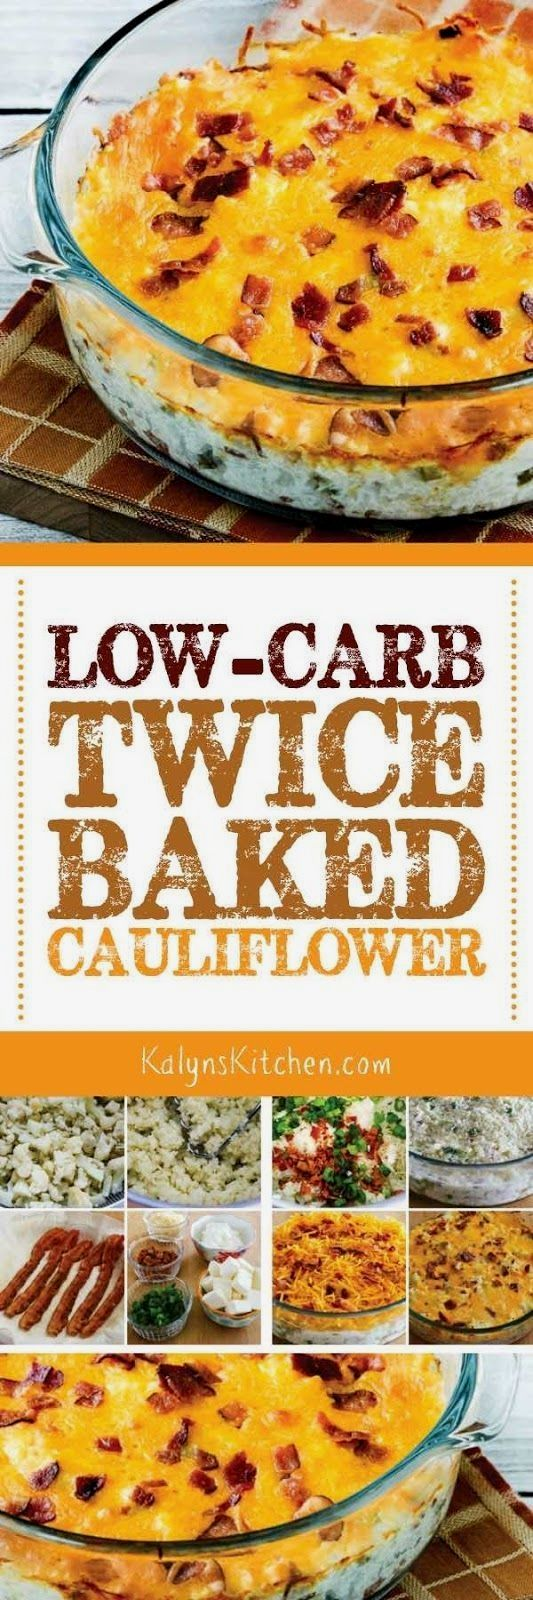 Low-Carb Twice-Baked Cauliflower (and Announcing a BIG CHANGE for Kalyn's Kitchen!)